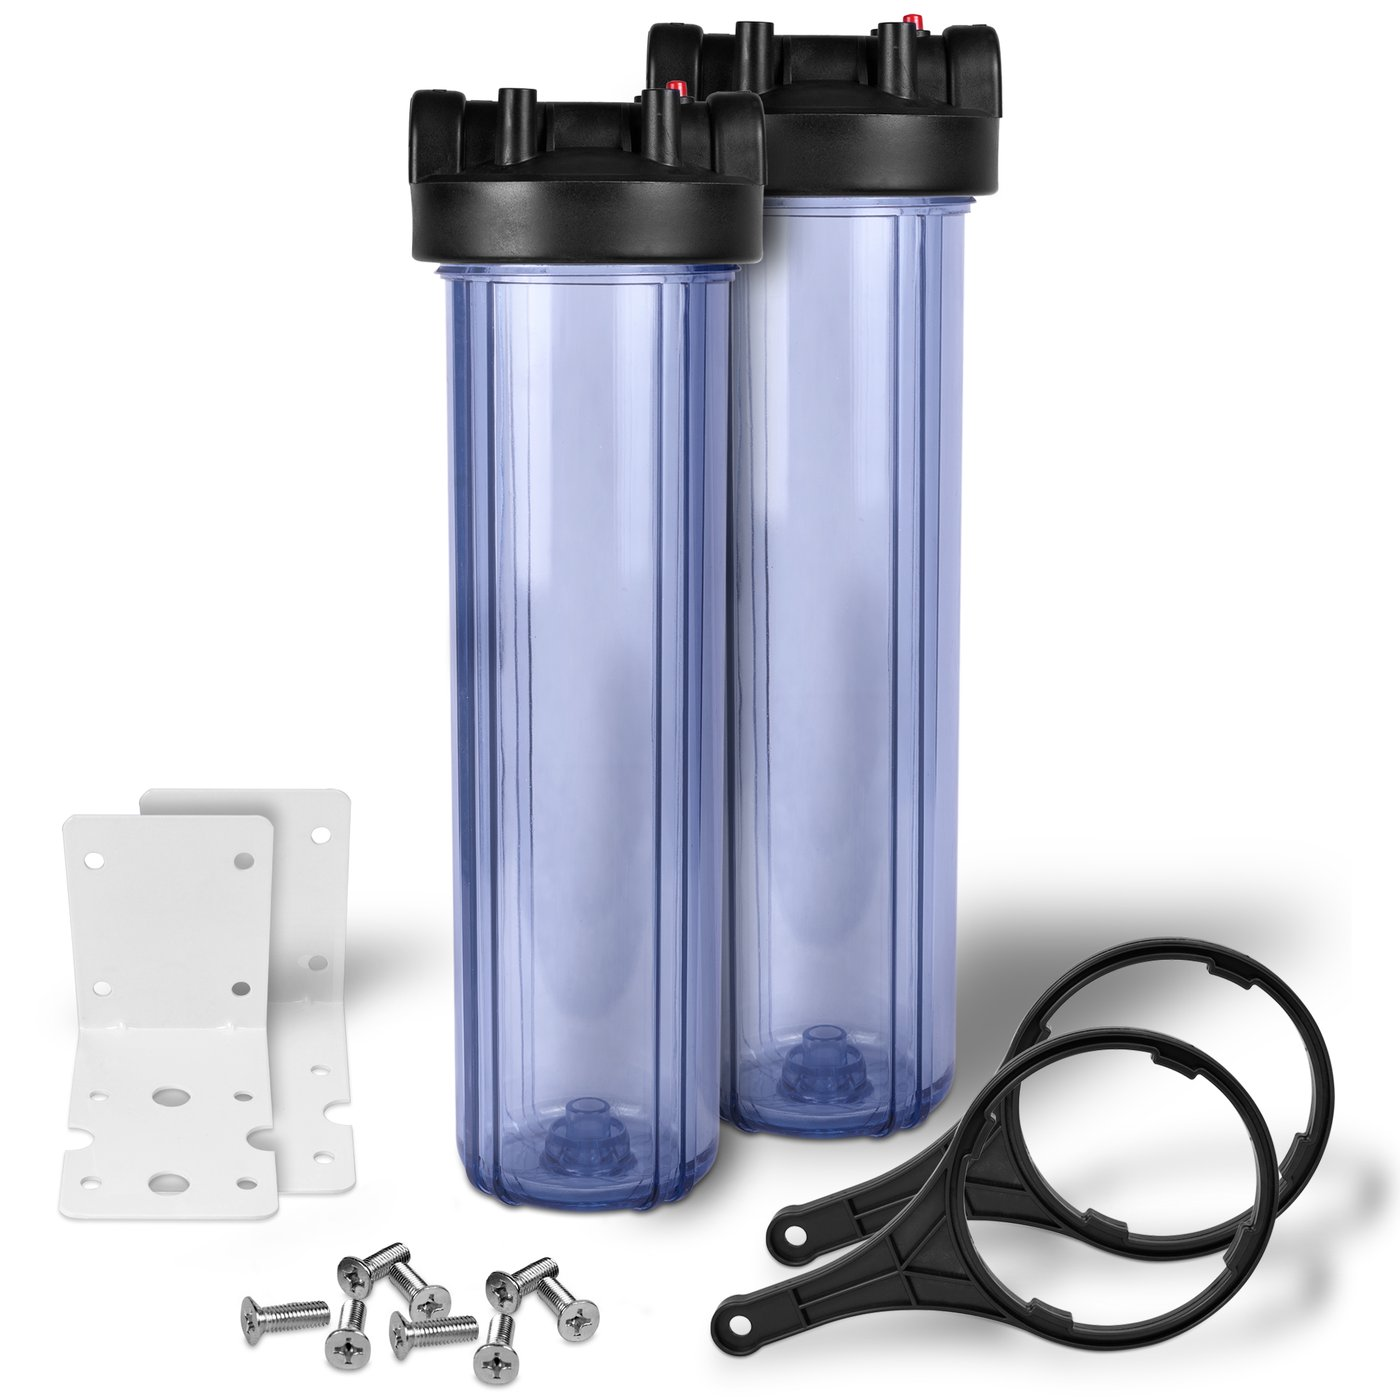 "20"" Transparent Big Blue Housing for Whole House Water Filtration System, 1"" Brass Port, Mounting (2 pack) Hardware"